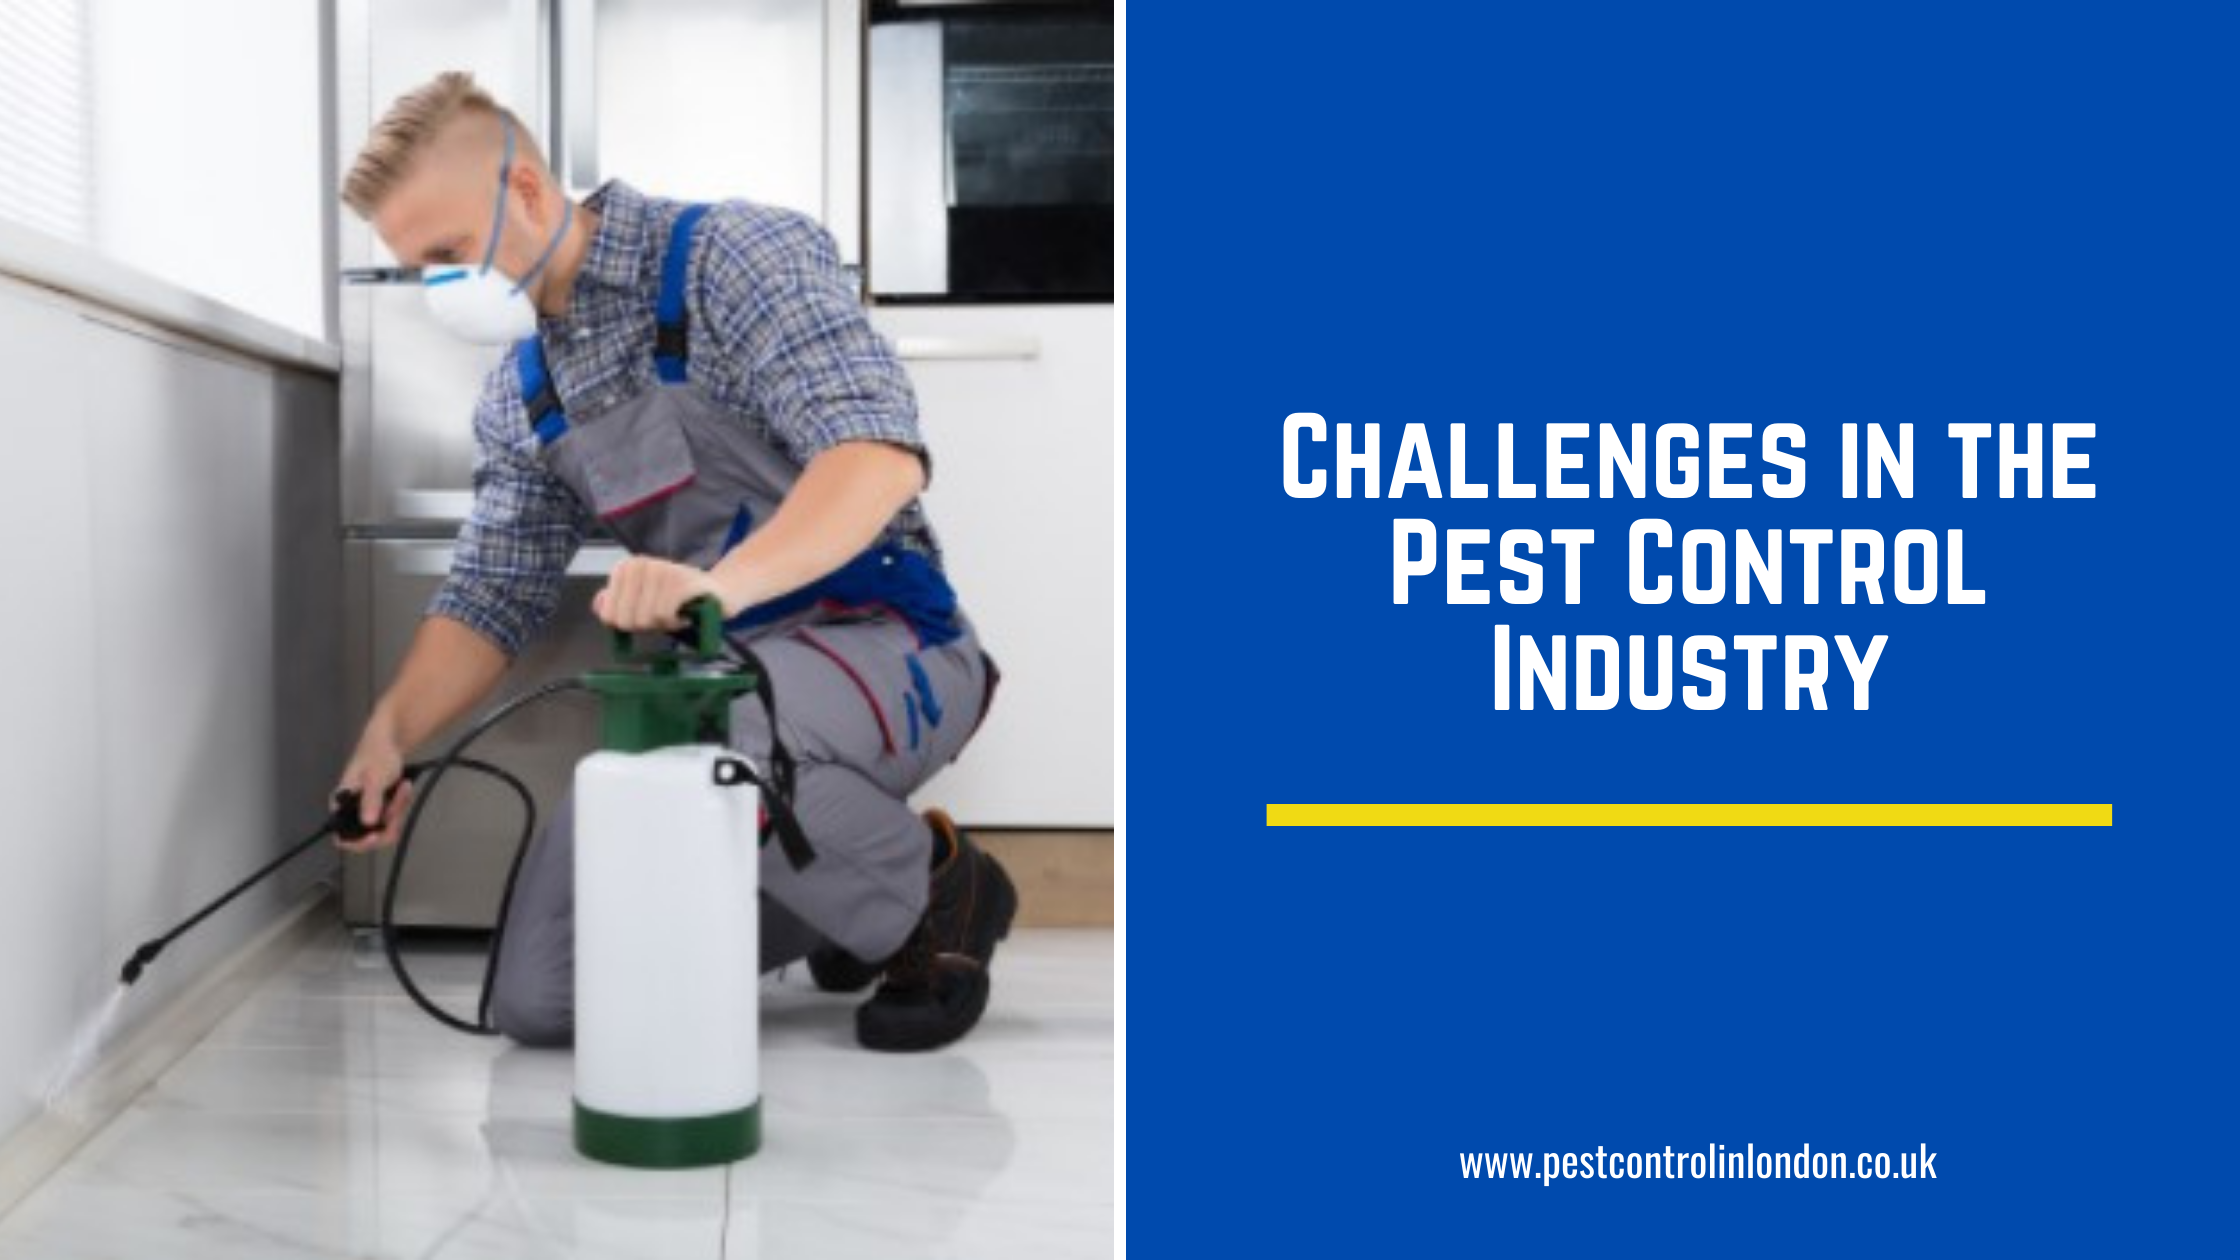 Challenges in the Pest Control Industry